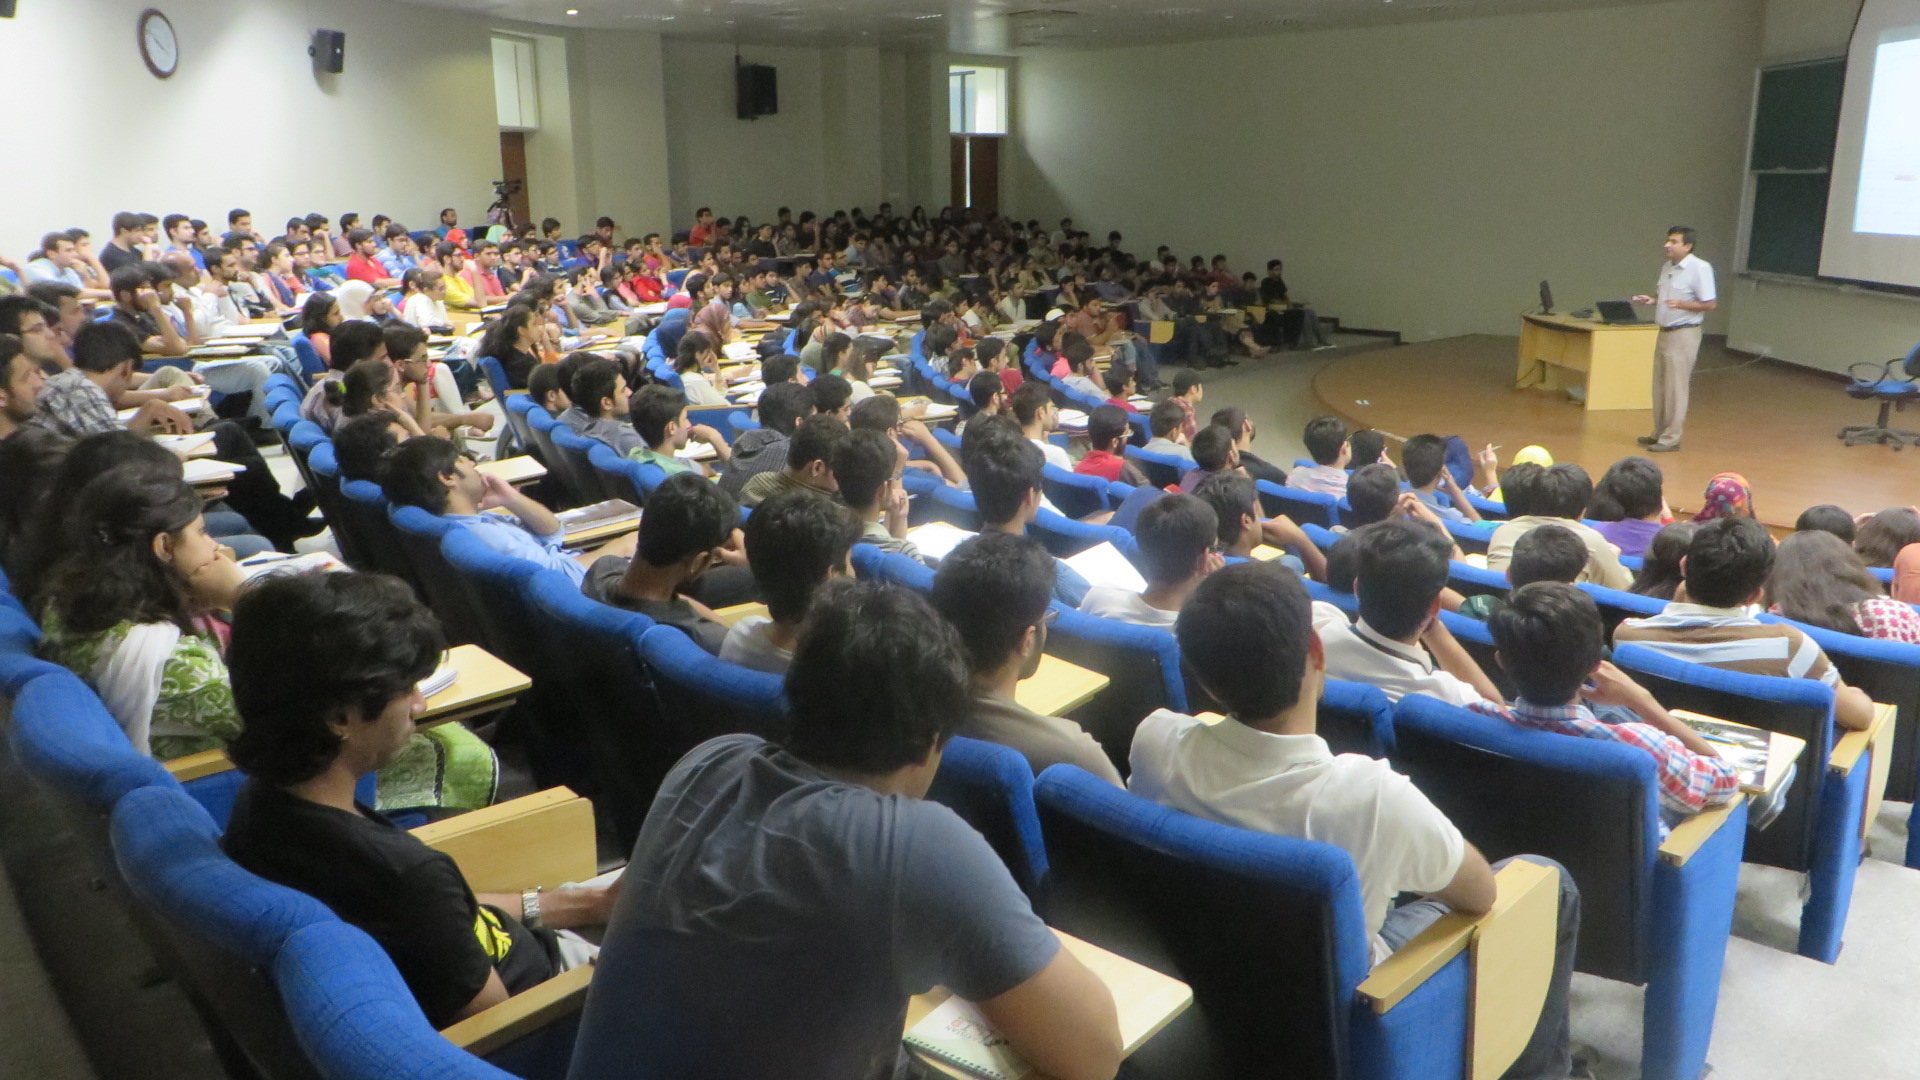 Dr. Sabieh welcomes batch 2019 to Physlab